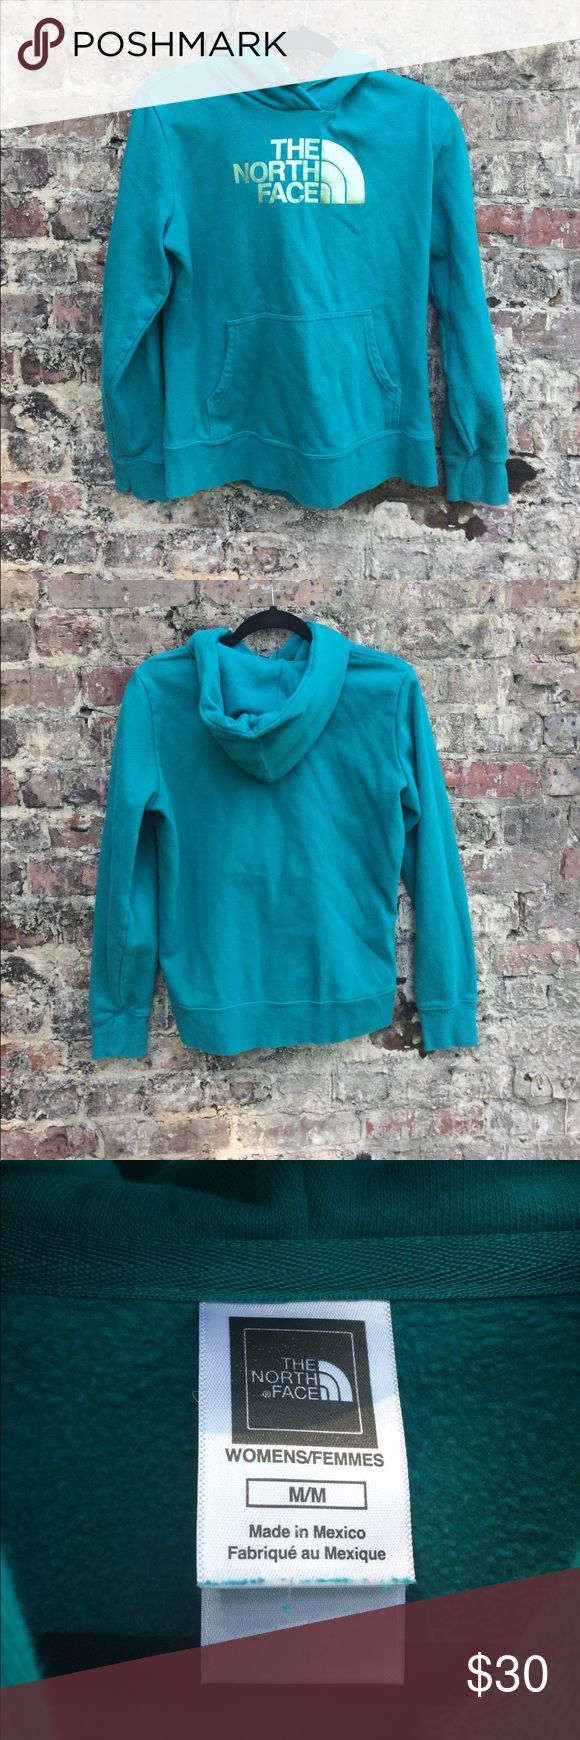 North face hoodie North face teal green hoodie with gold lettering. Women's size medium. North Face Tops Sweatshirts & Hoodies